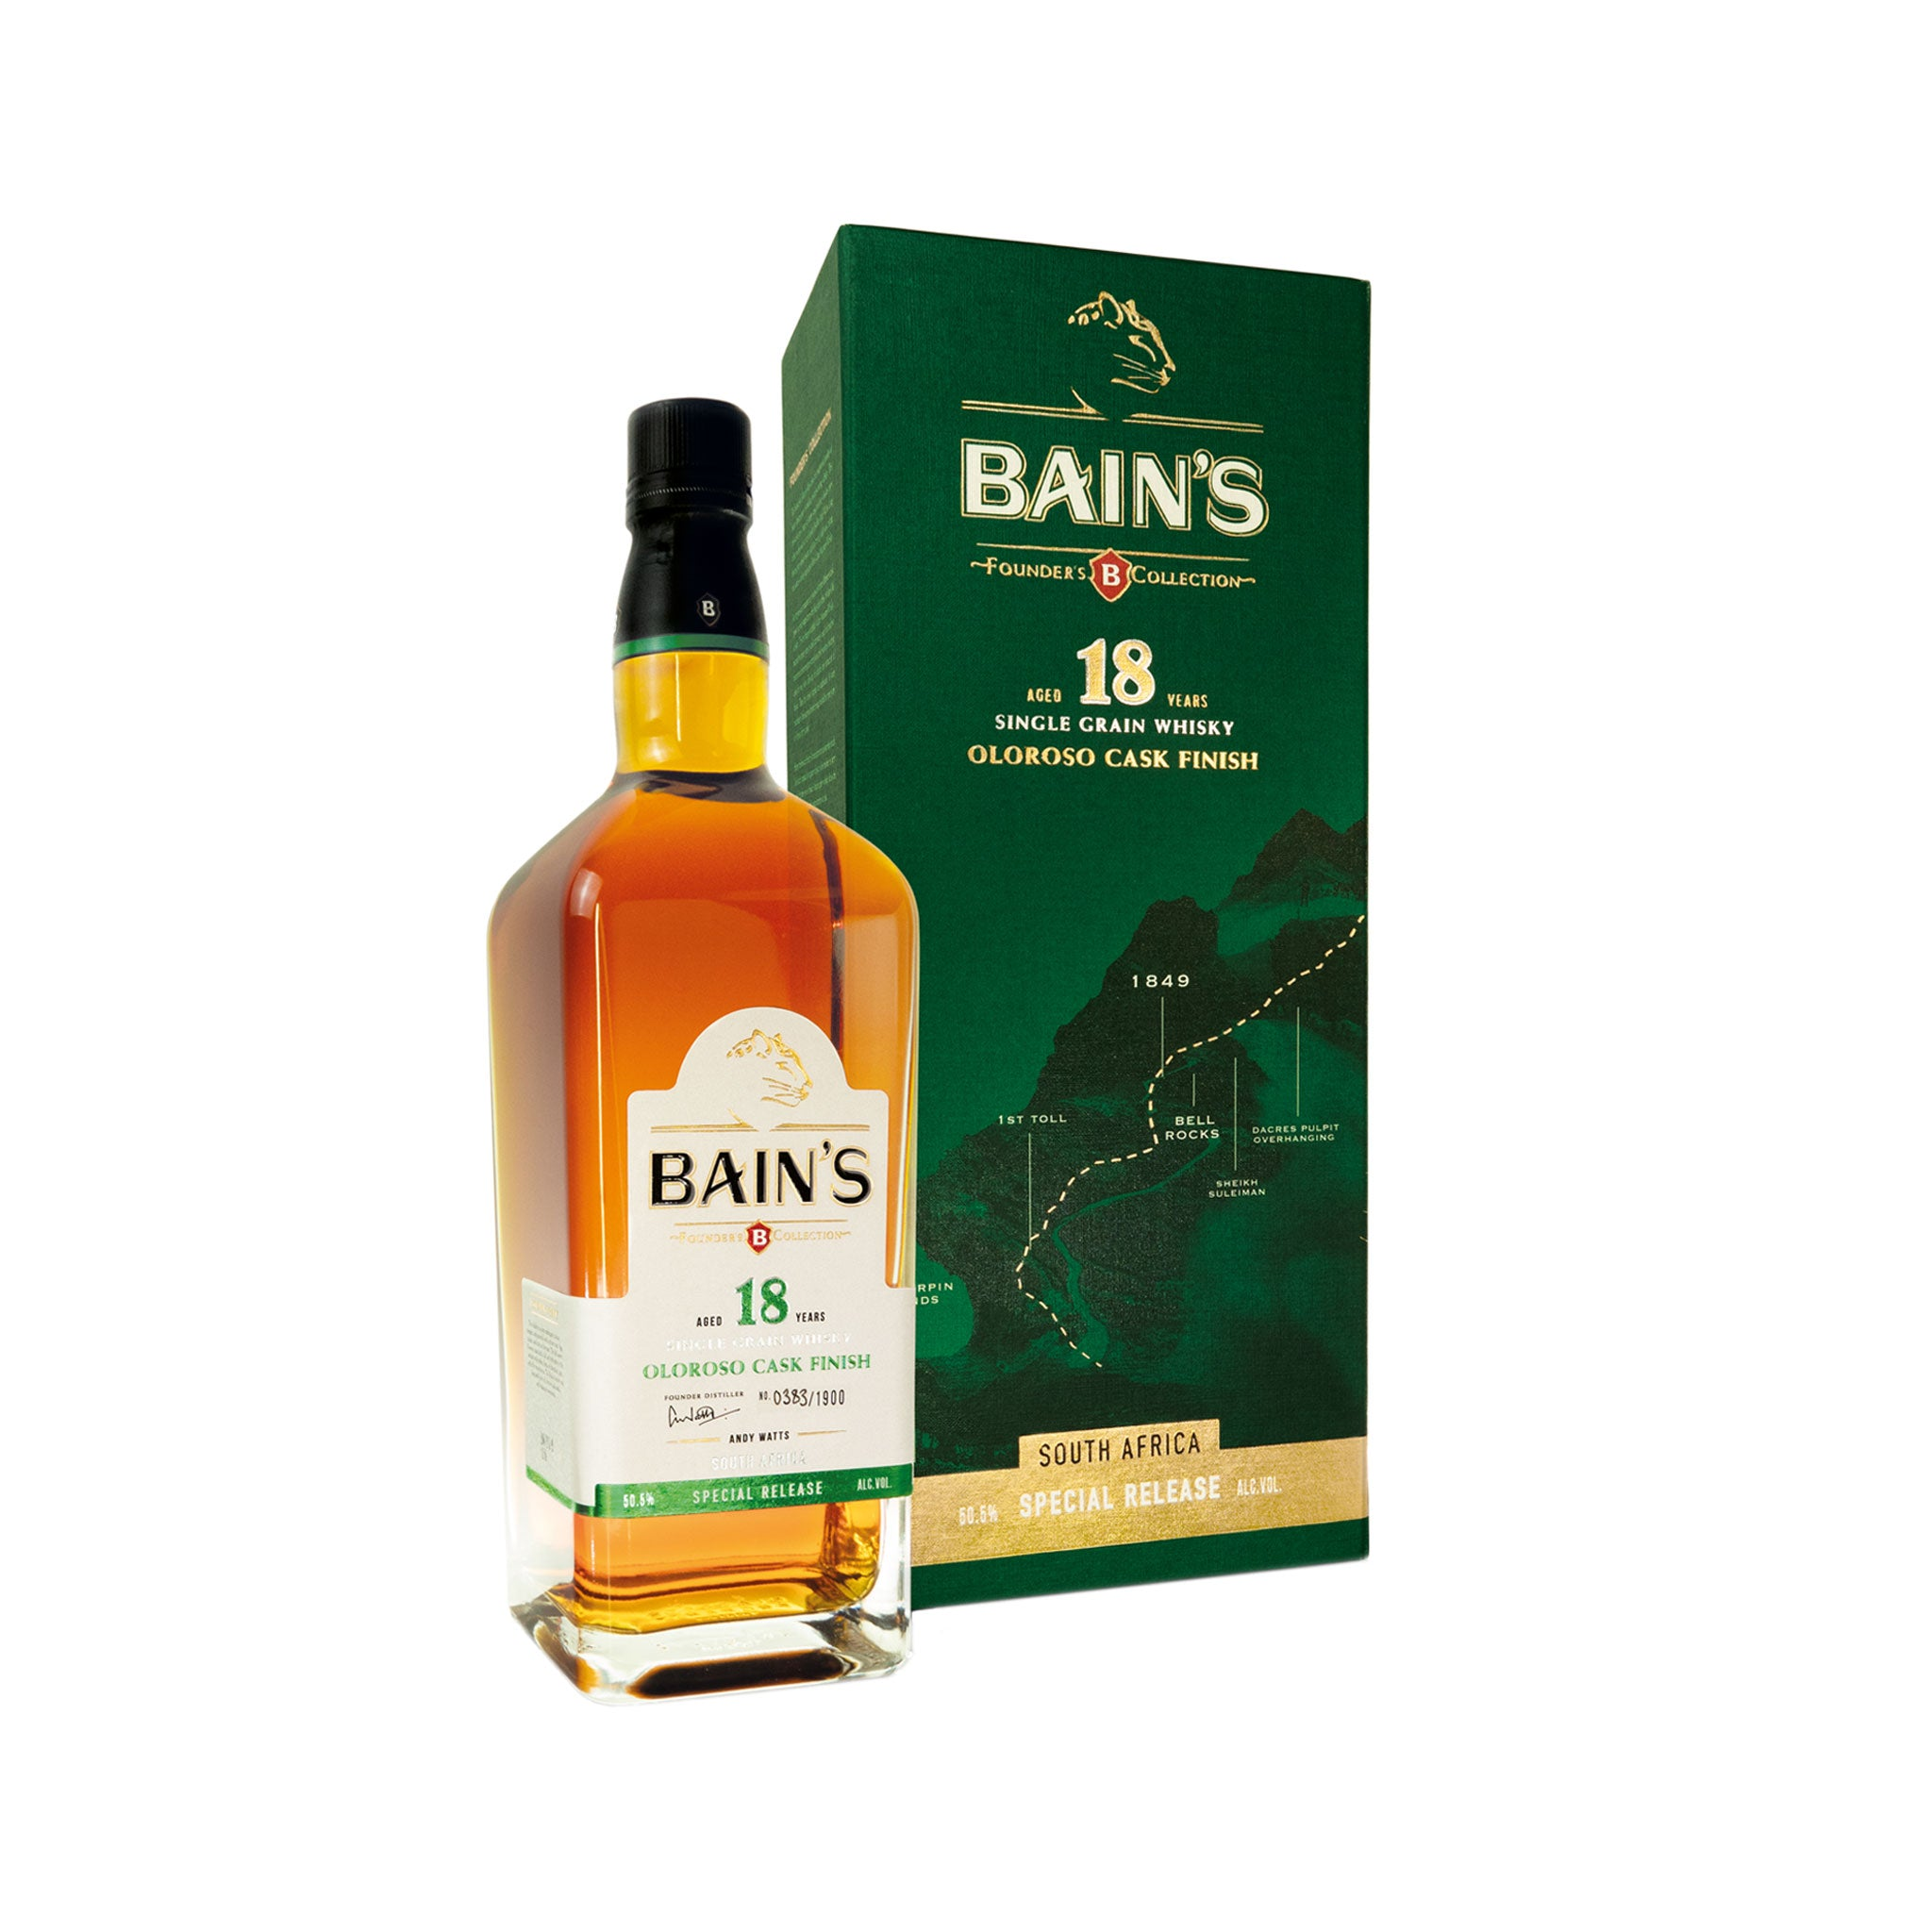 Bain's Founders Collection Whisky 18 Year Old Oloroso Cask Finish